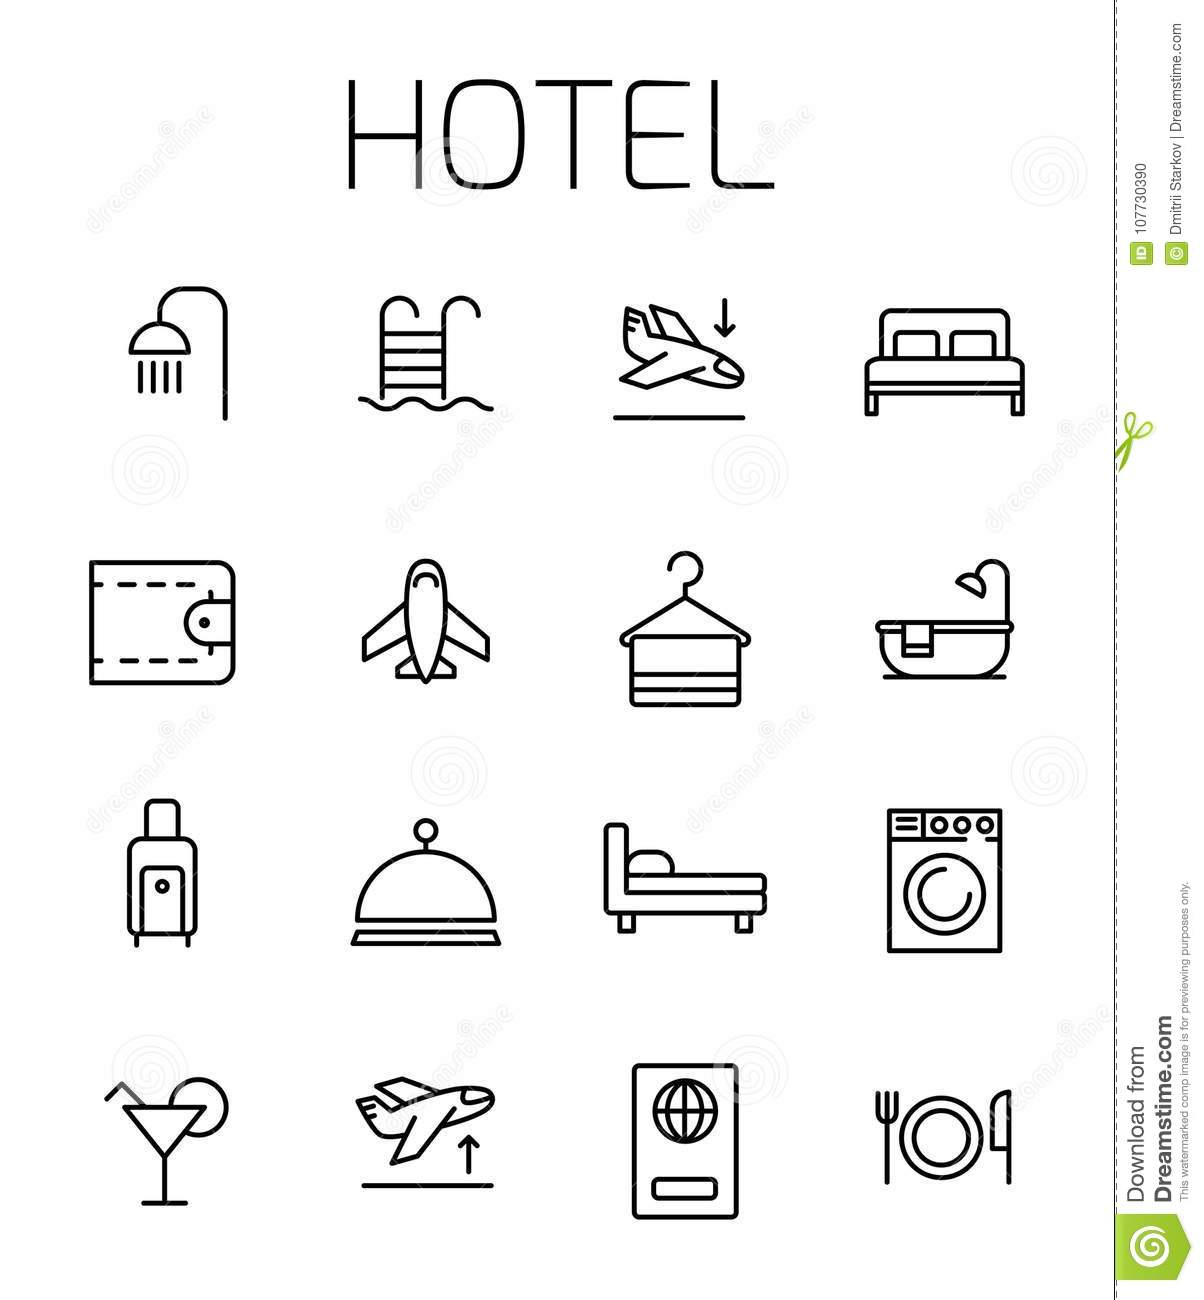 Hotel related vector icon set